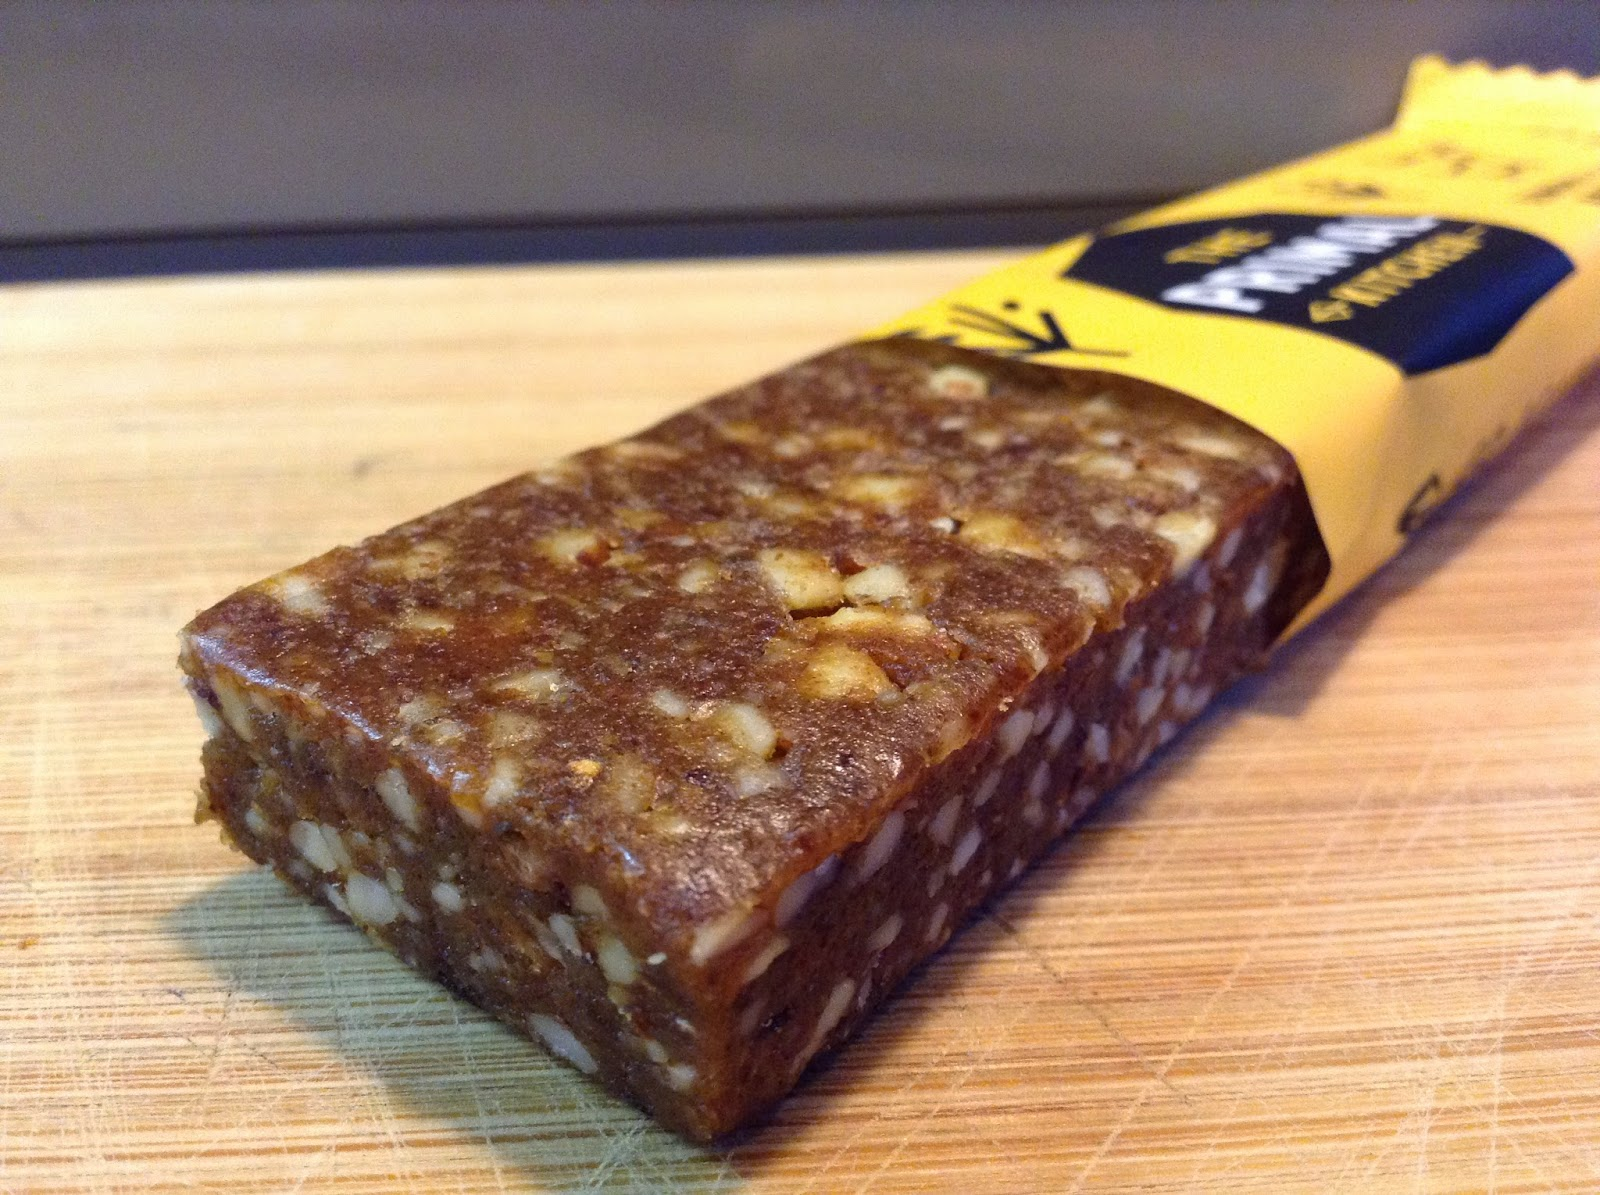 cave food kitchen: product review: the primal kitchen bar